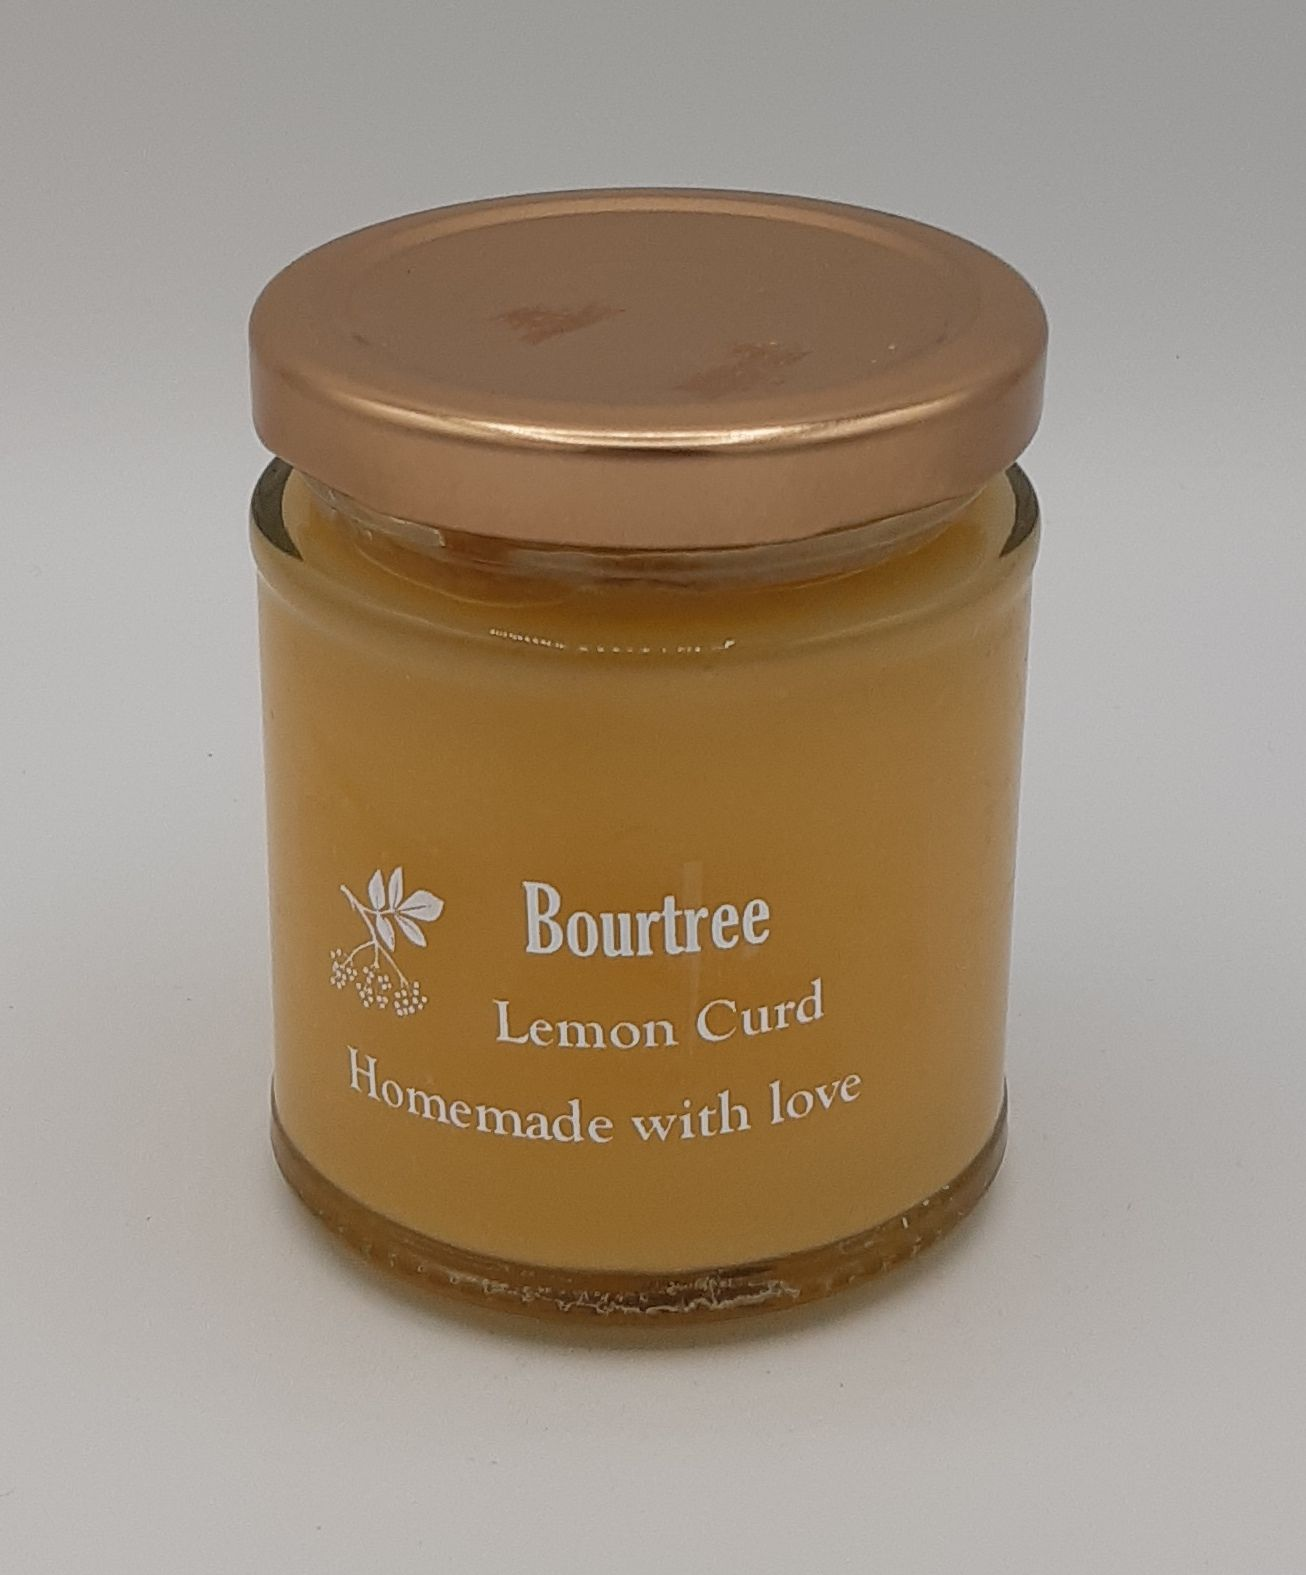 Bourtree Lemon Curd